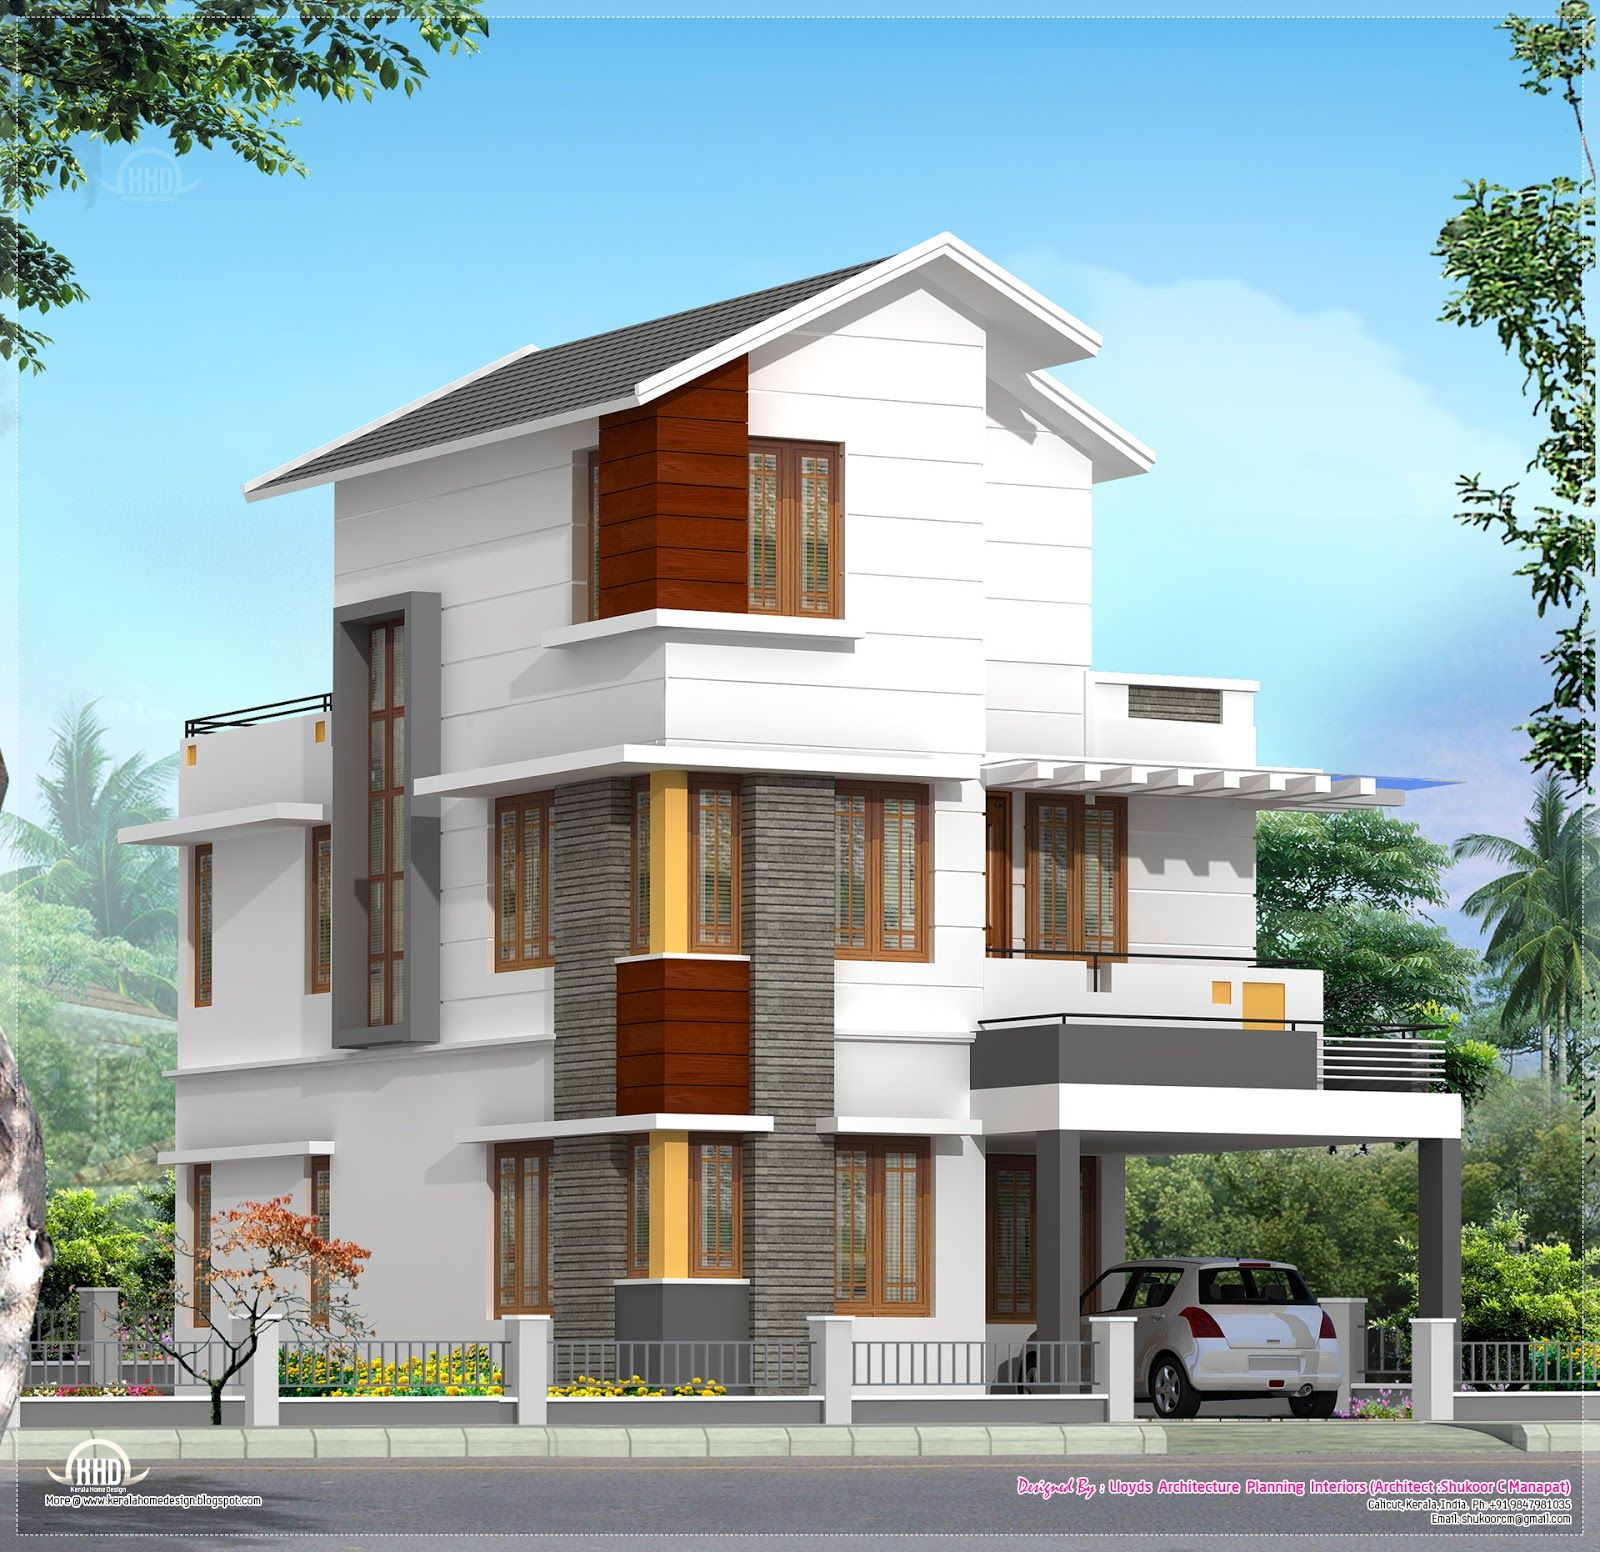 Kerala Model Home Plans: 4 Bedroom House Plan In Less Than 3 Cents In 2019